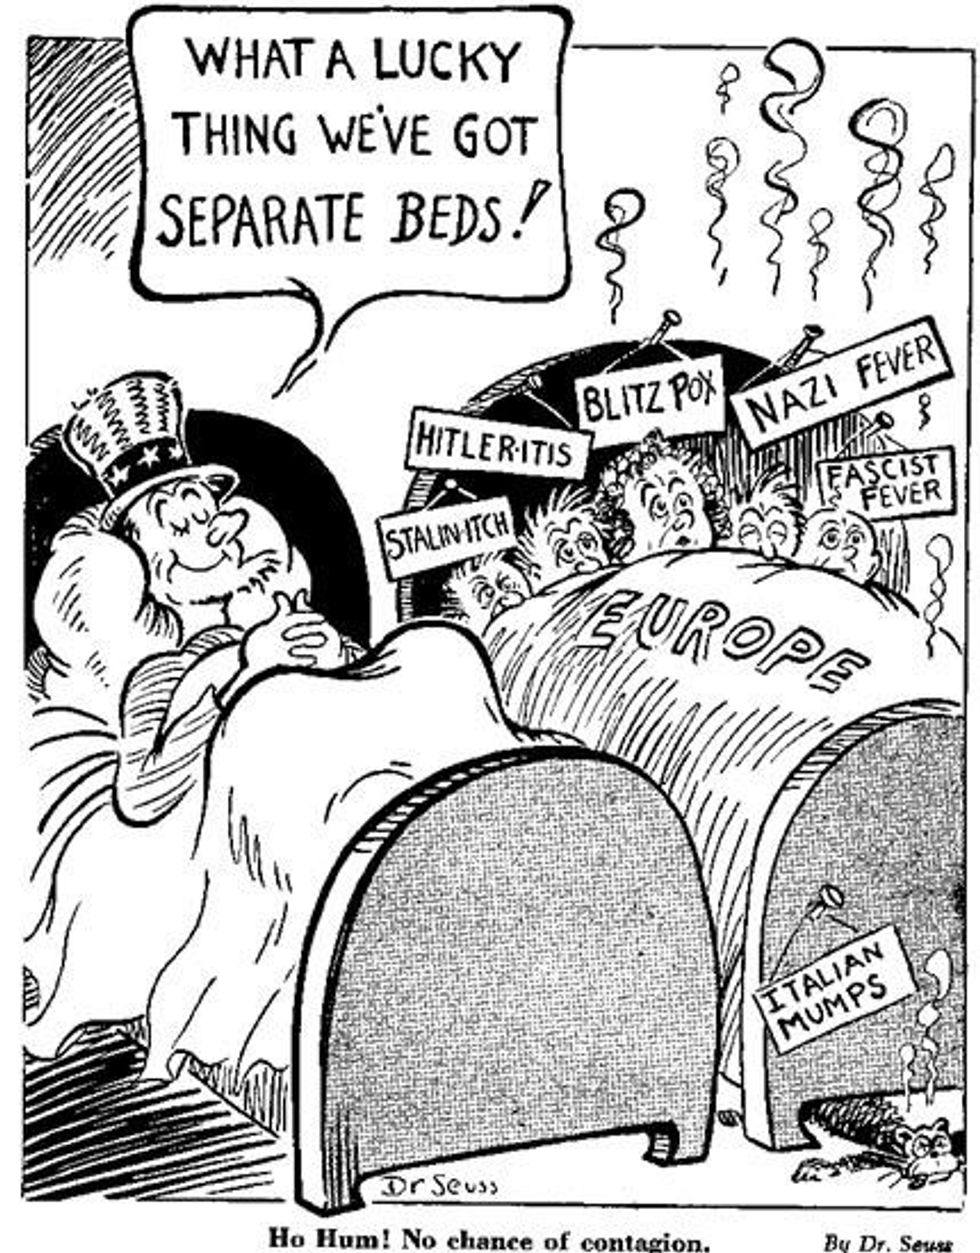 """Before he was famous, Dr. Seuss used his cartoon skills to skewer """"America First"""" fascists. - Upworthy"""